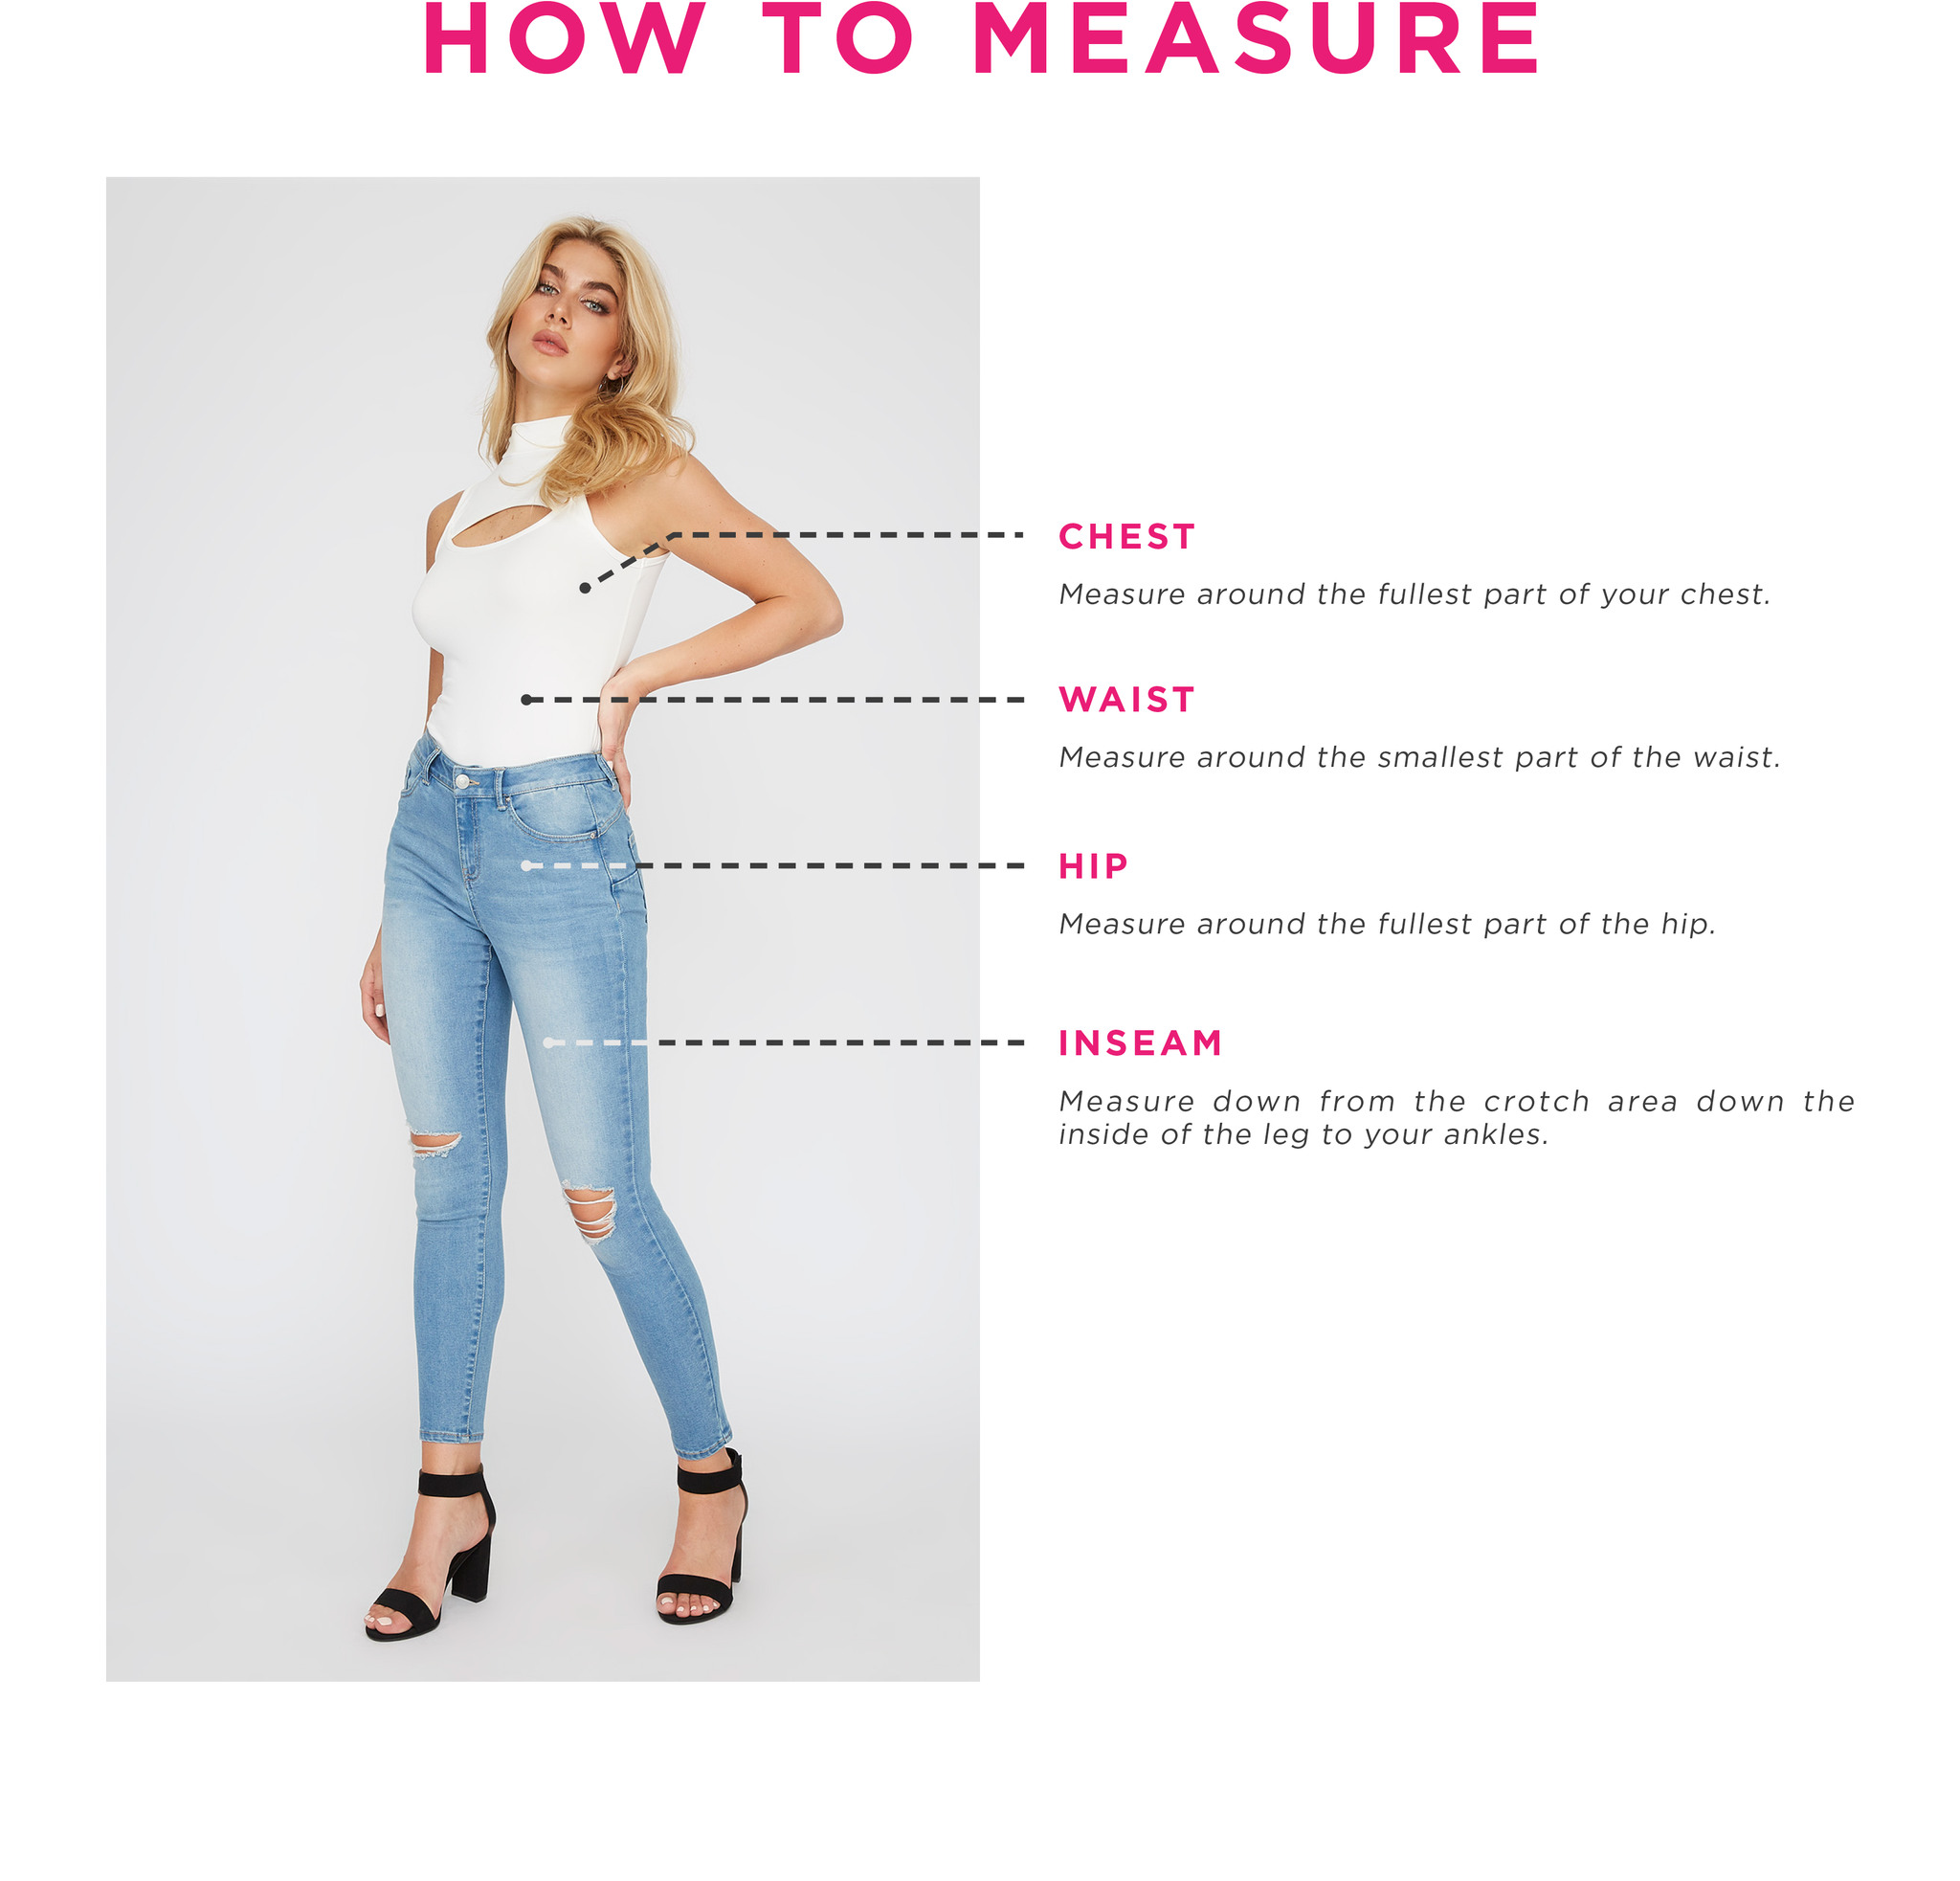 Charlotte Russe - How To Measure